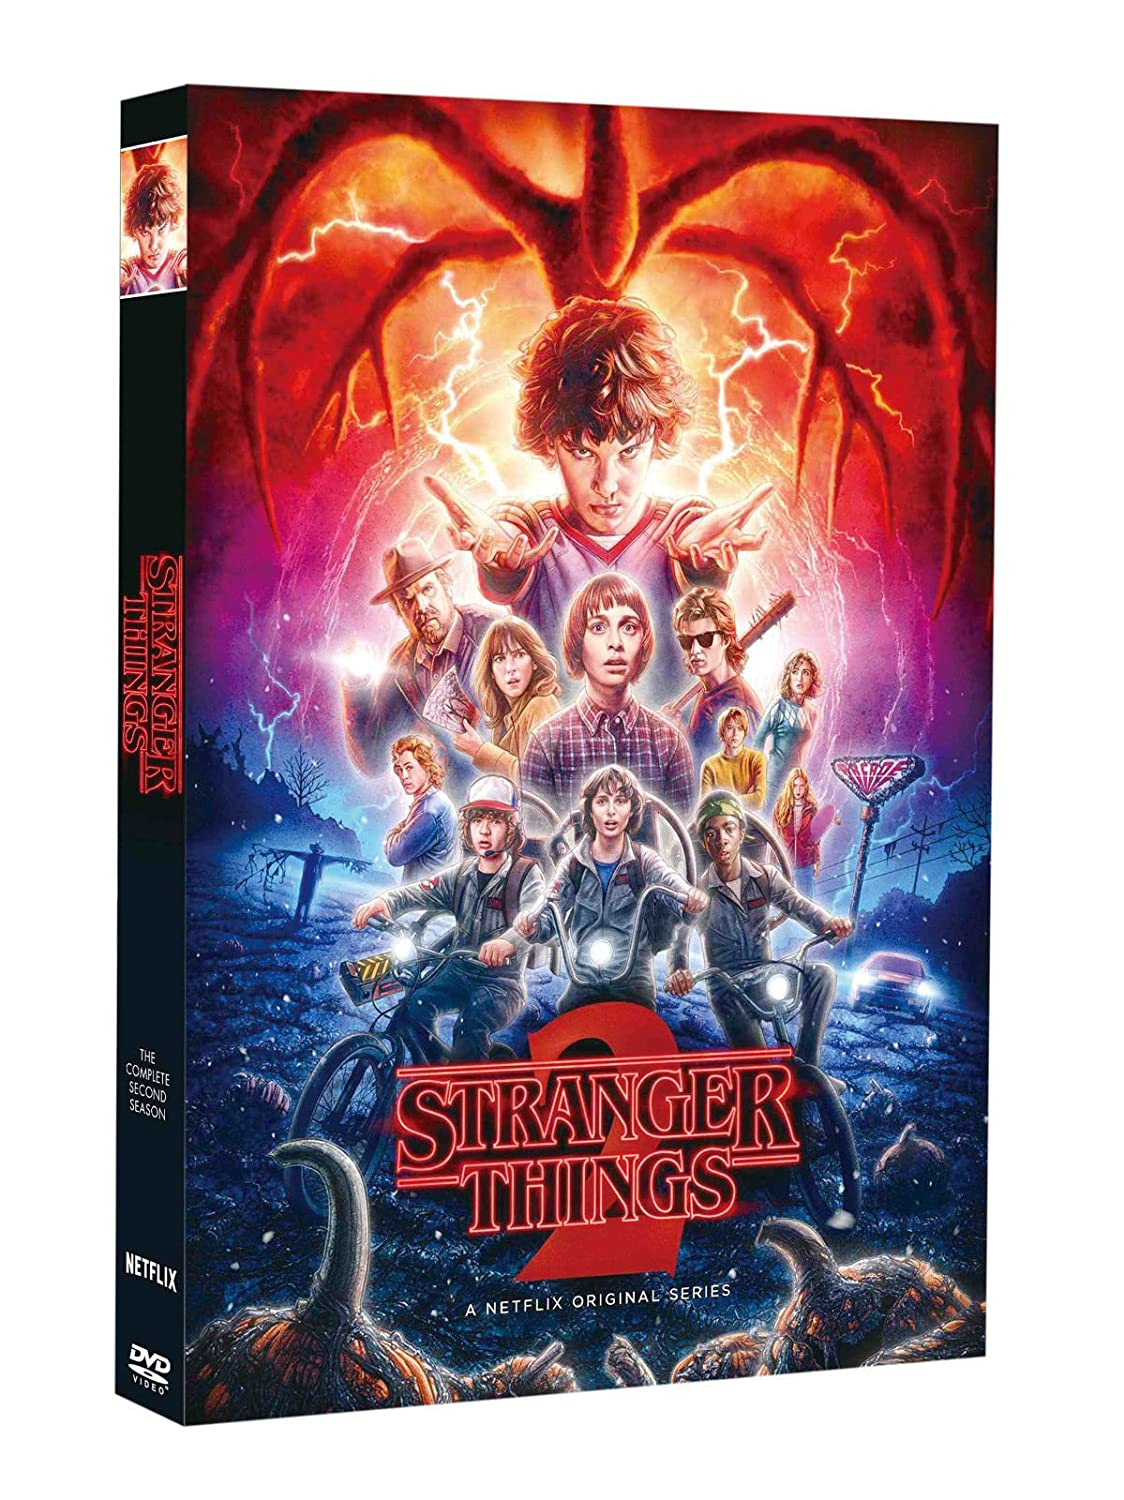 Stranger Things Season 2 (DVD, 2017, 3-Disc Set)